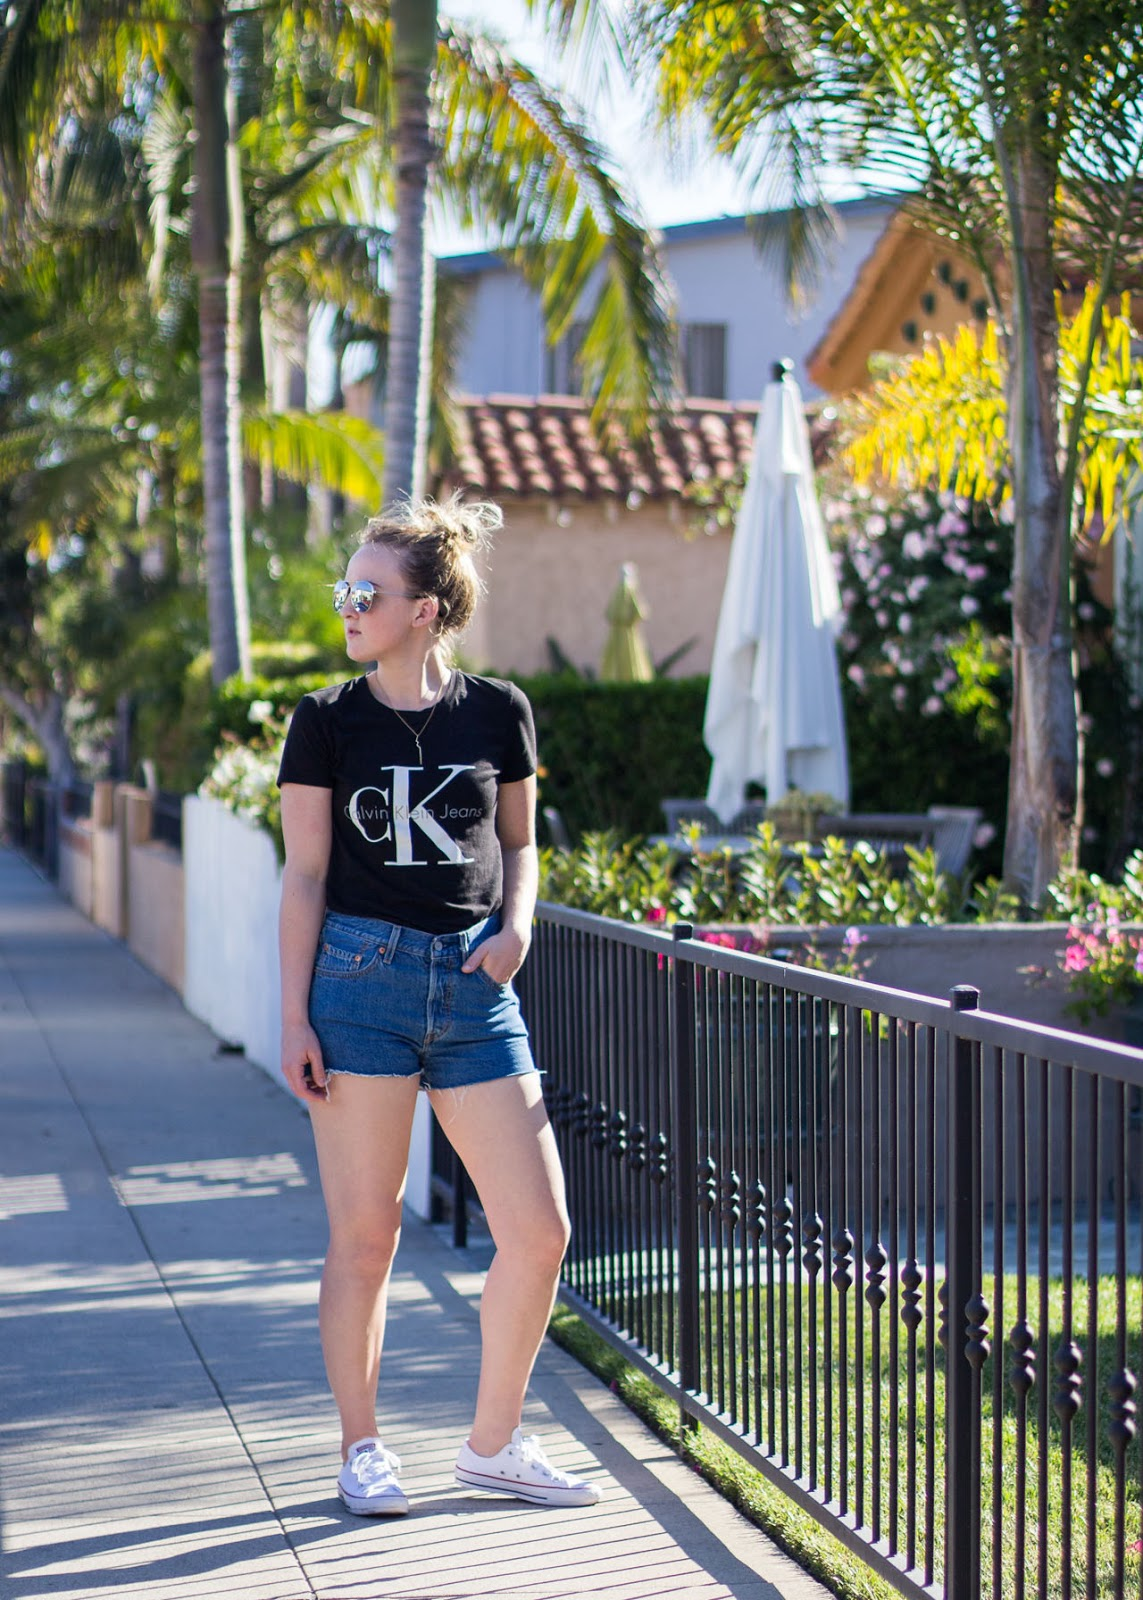 Travel Style - California Long Beach - Calvin Klein logo t-shirt - Levi's shorts